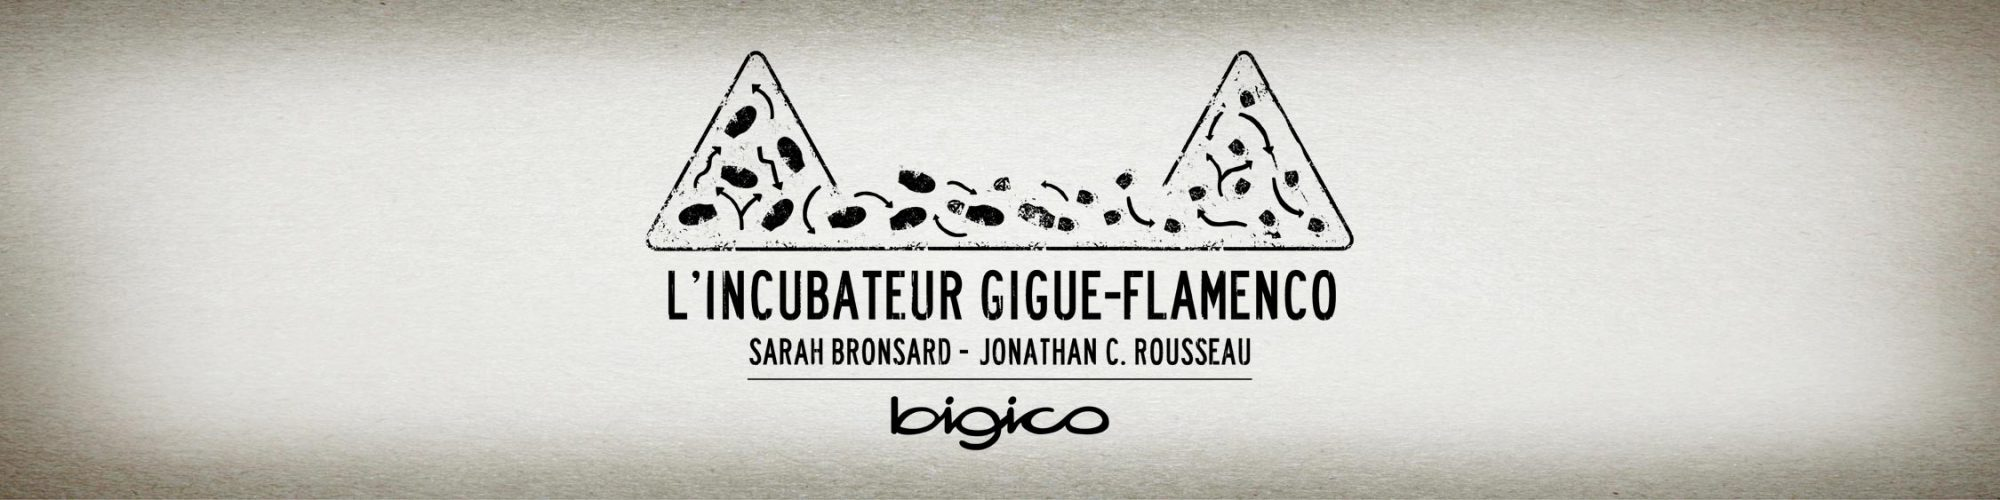 slide-incubateur-gigue-flamenco